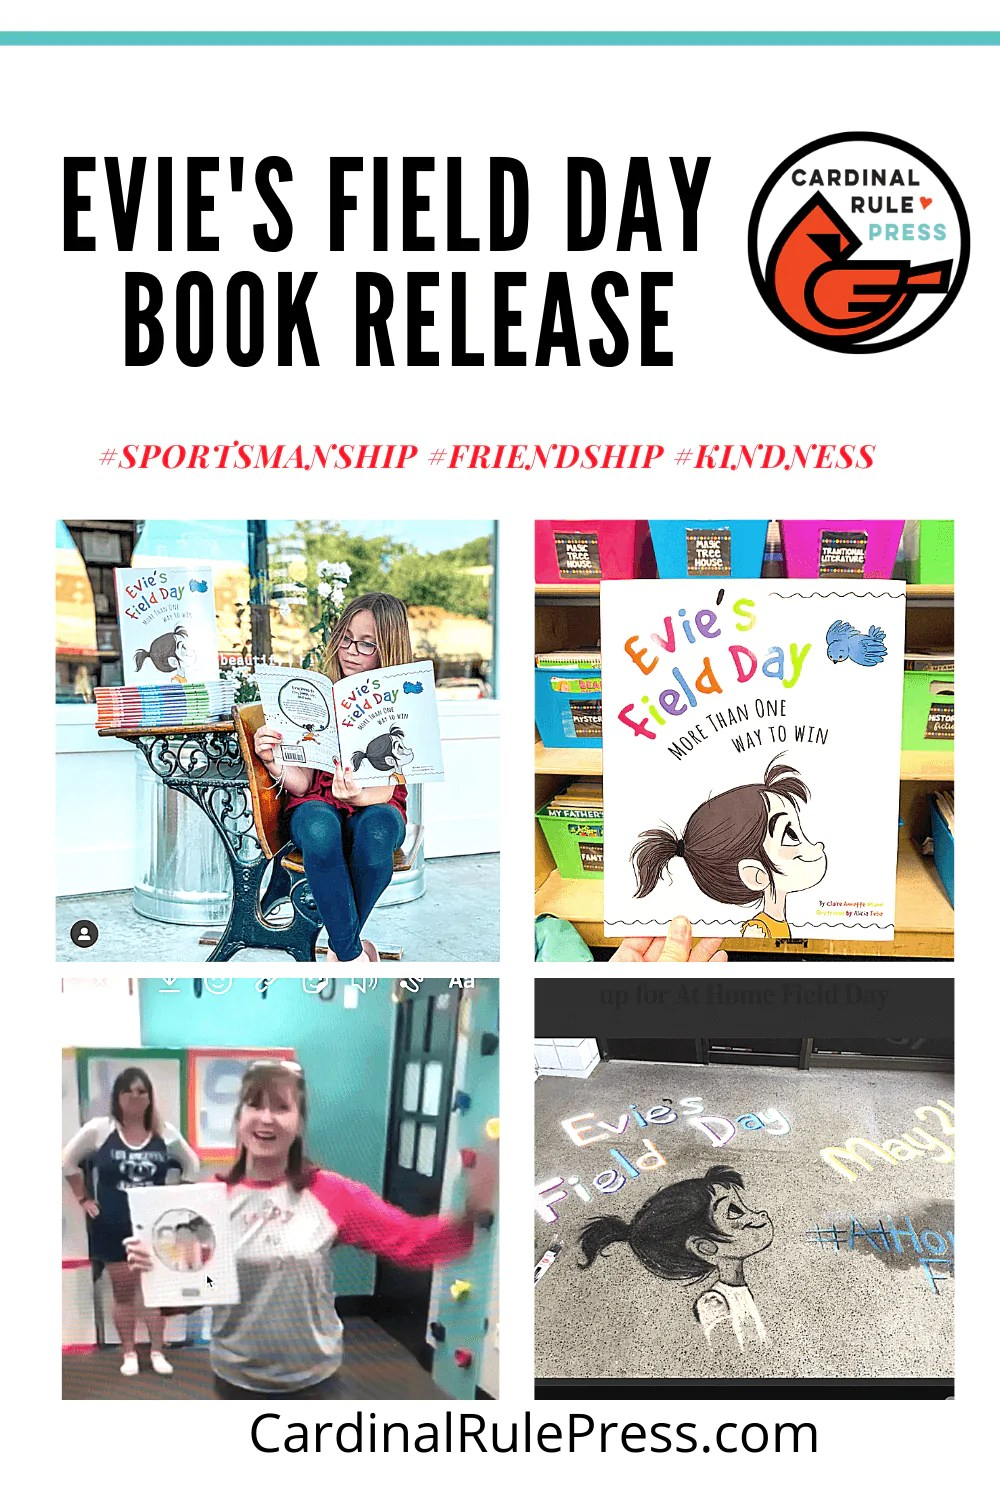 Evie's Field Day Book Release